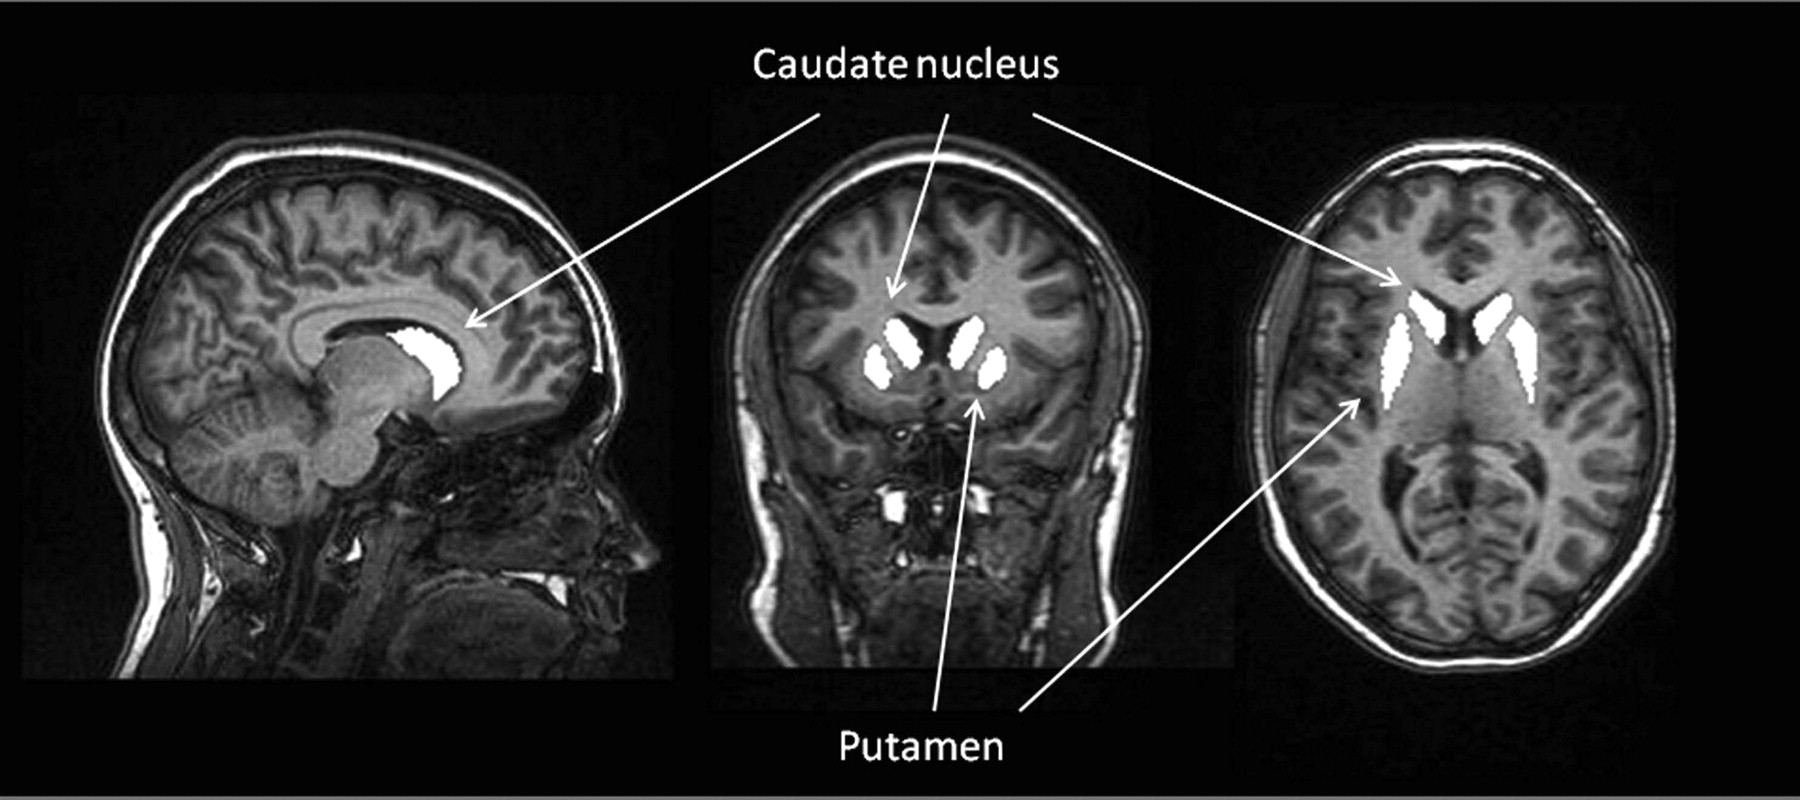 Decreased Diffusivity In The Caudate Nucleus Of Presymptomatic Huntington Disease Gene Carriers Which Explanation American Journal Of Neuroradiology